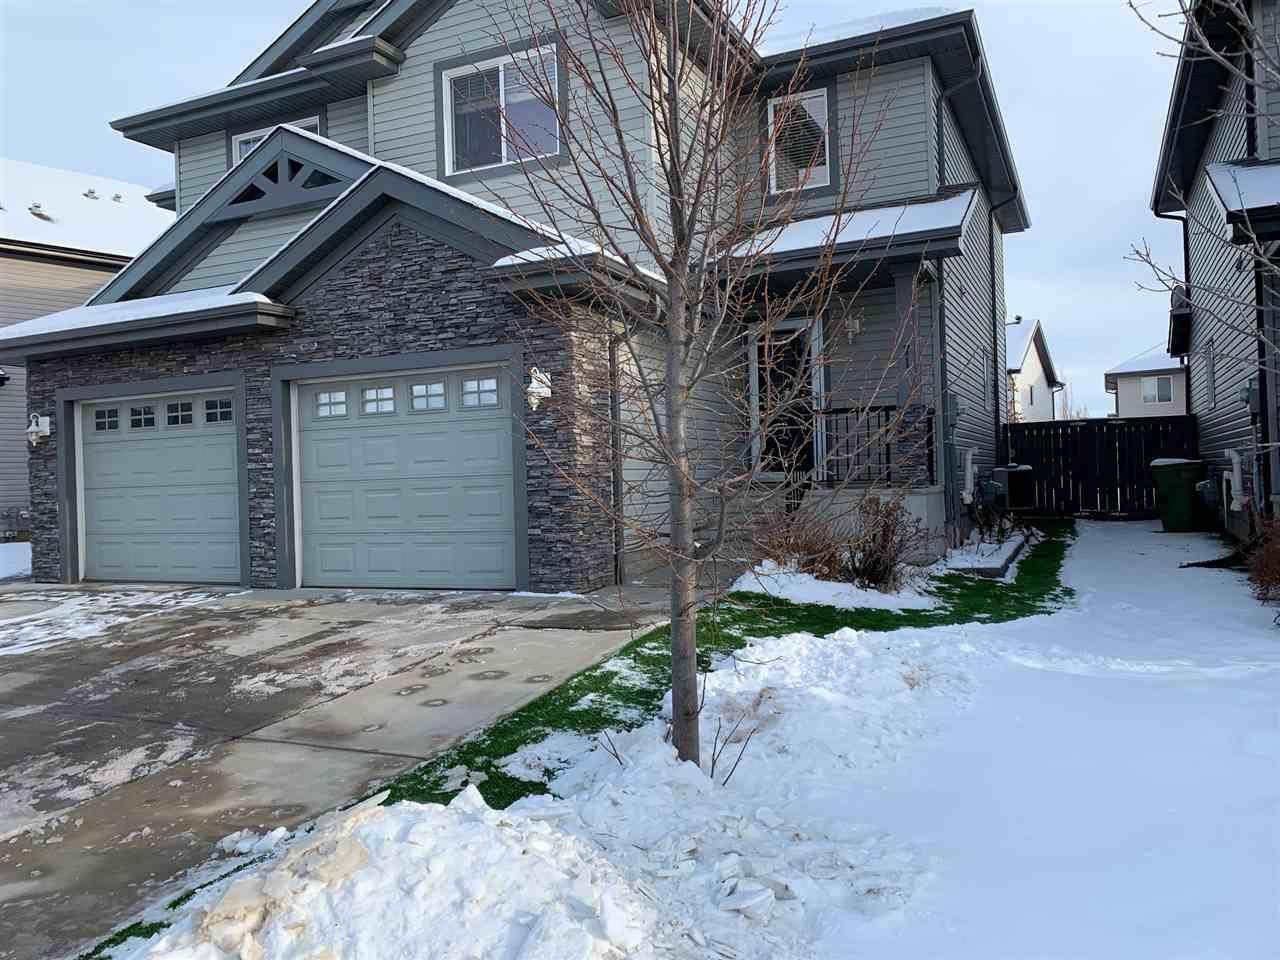 Townhouse for sale at 71 Calvert Wd Fort Saskatchewan Alberta - MLS: E4182329